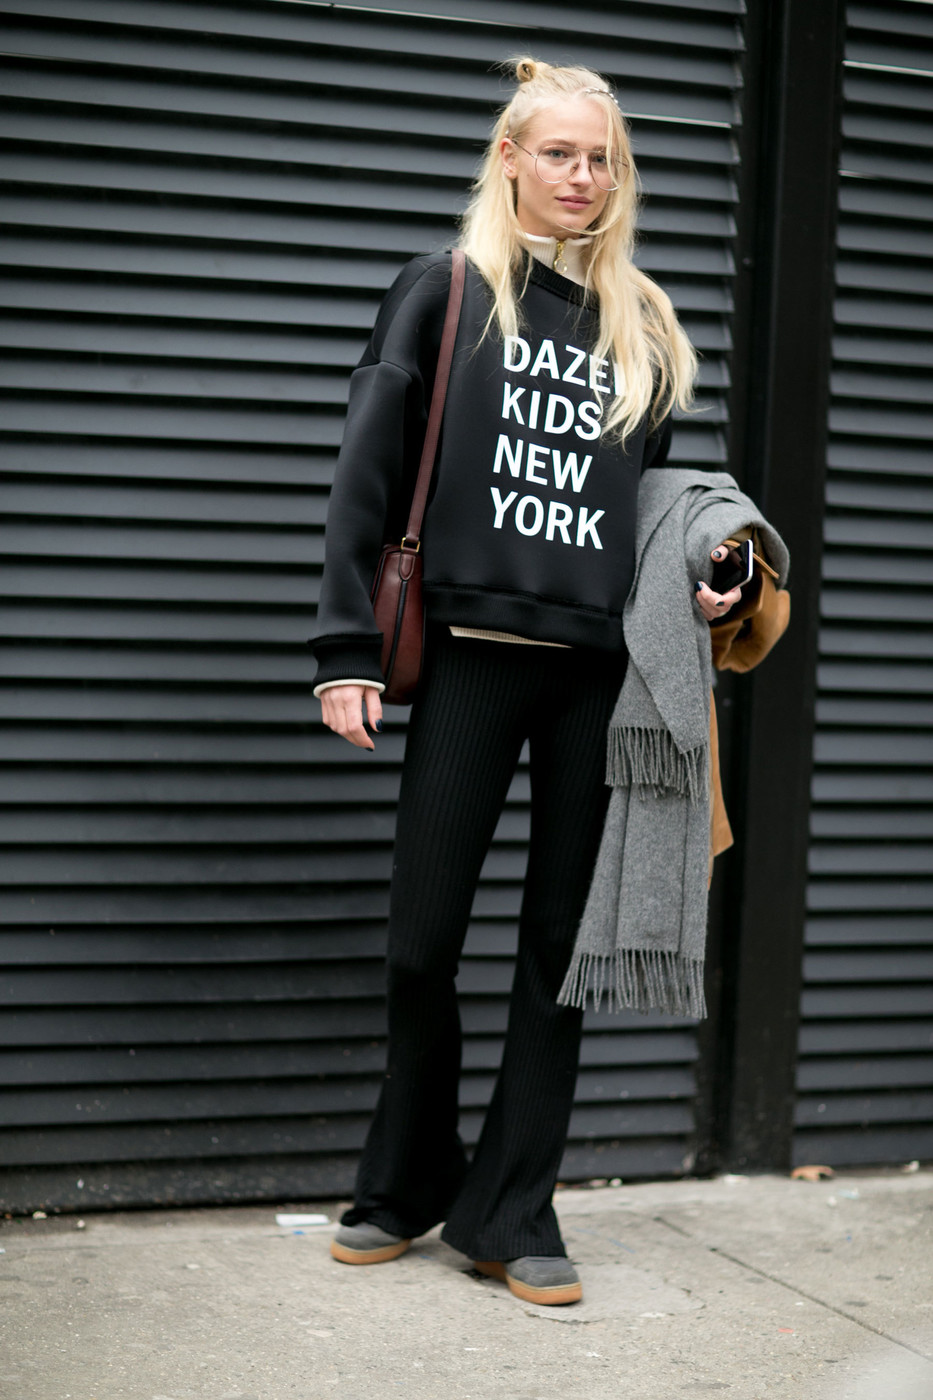 Trending: DKNY 'Don't Knock New York' Sweaters